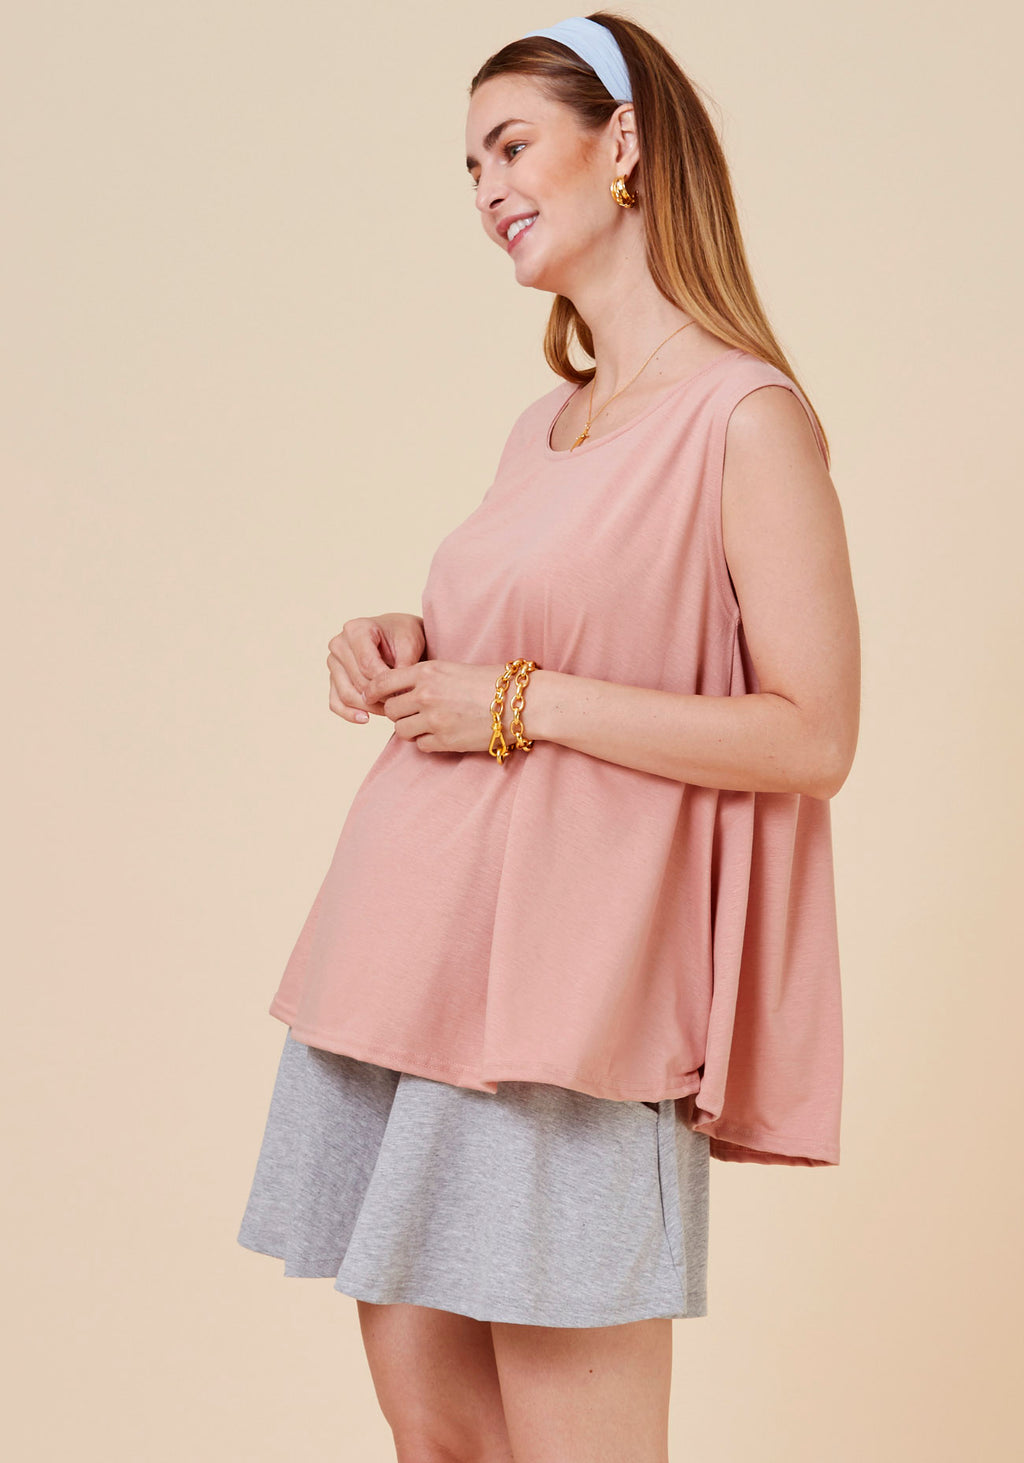 [SPECIAL PRICE] TRAPEZE TOP